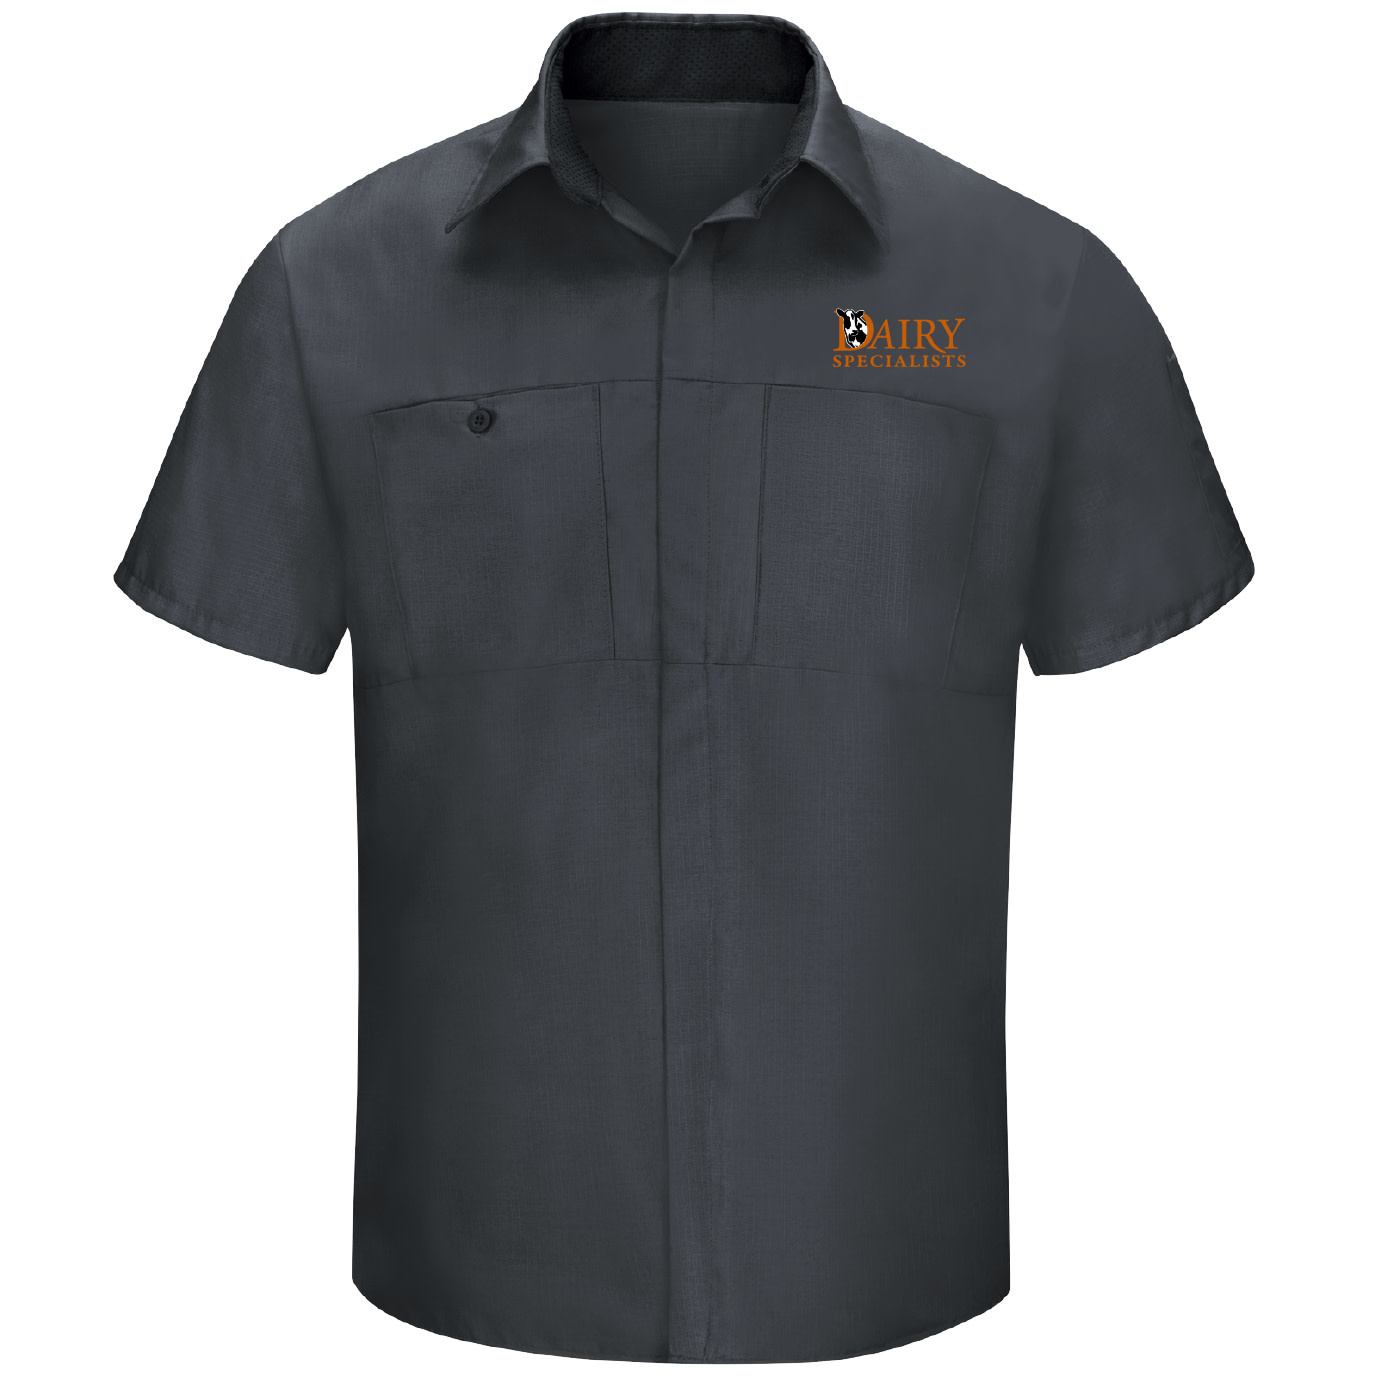 Red Cap Red Cap Men's Short Sleeve Performance Plus Shop Shirt With OilBlok Technology (Charcoal/Black Mesh)